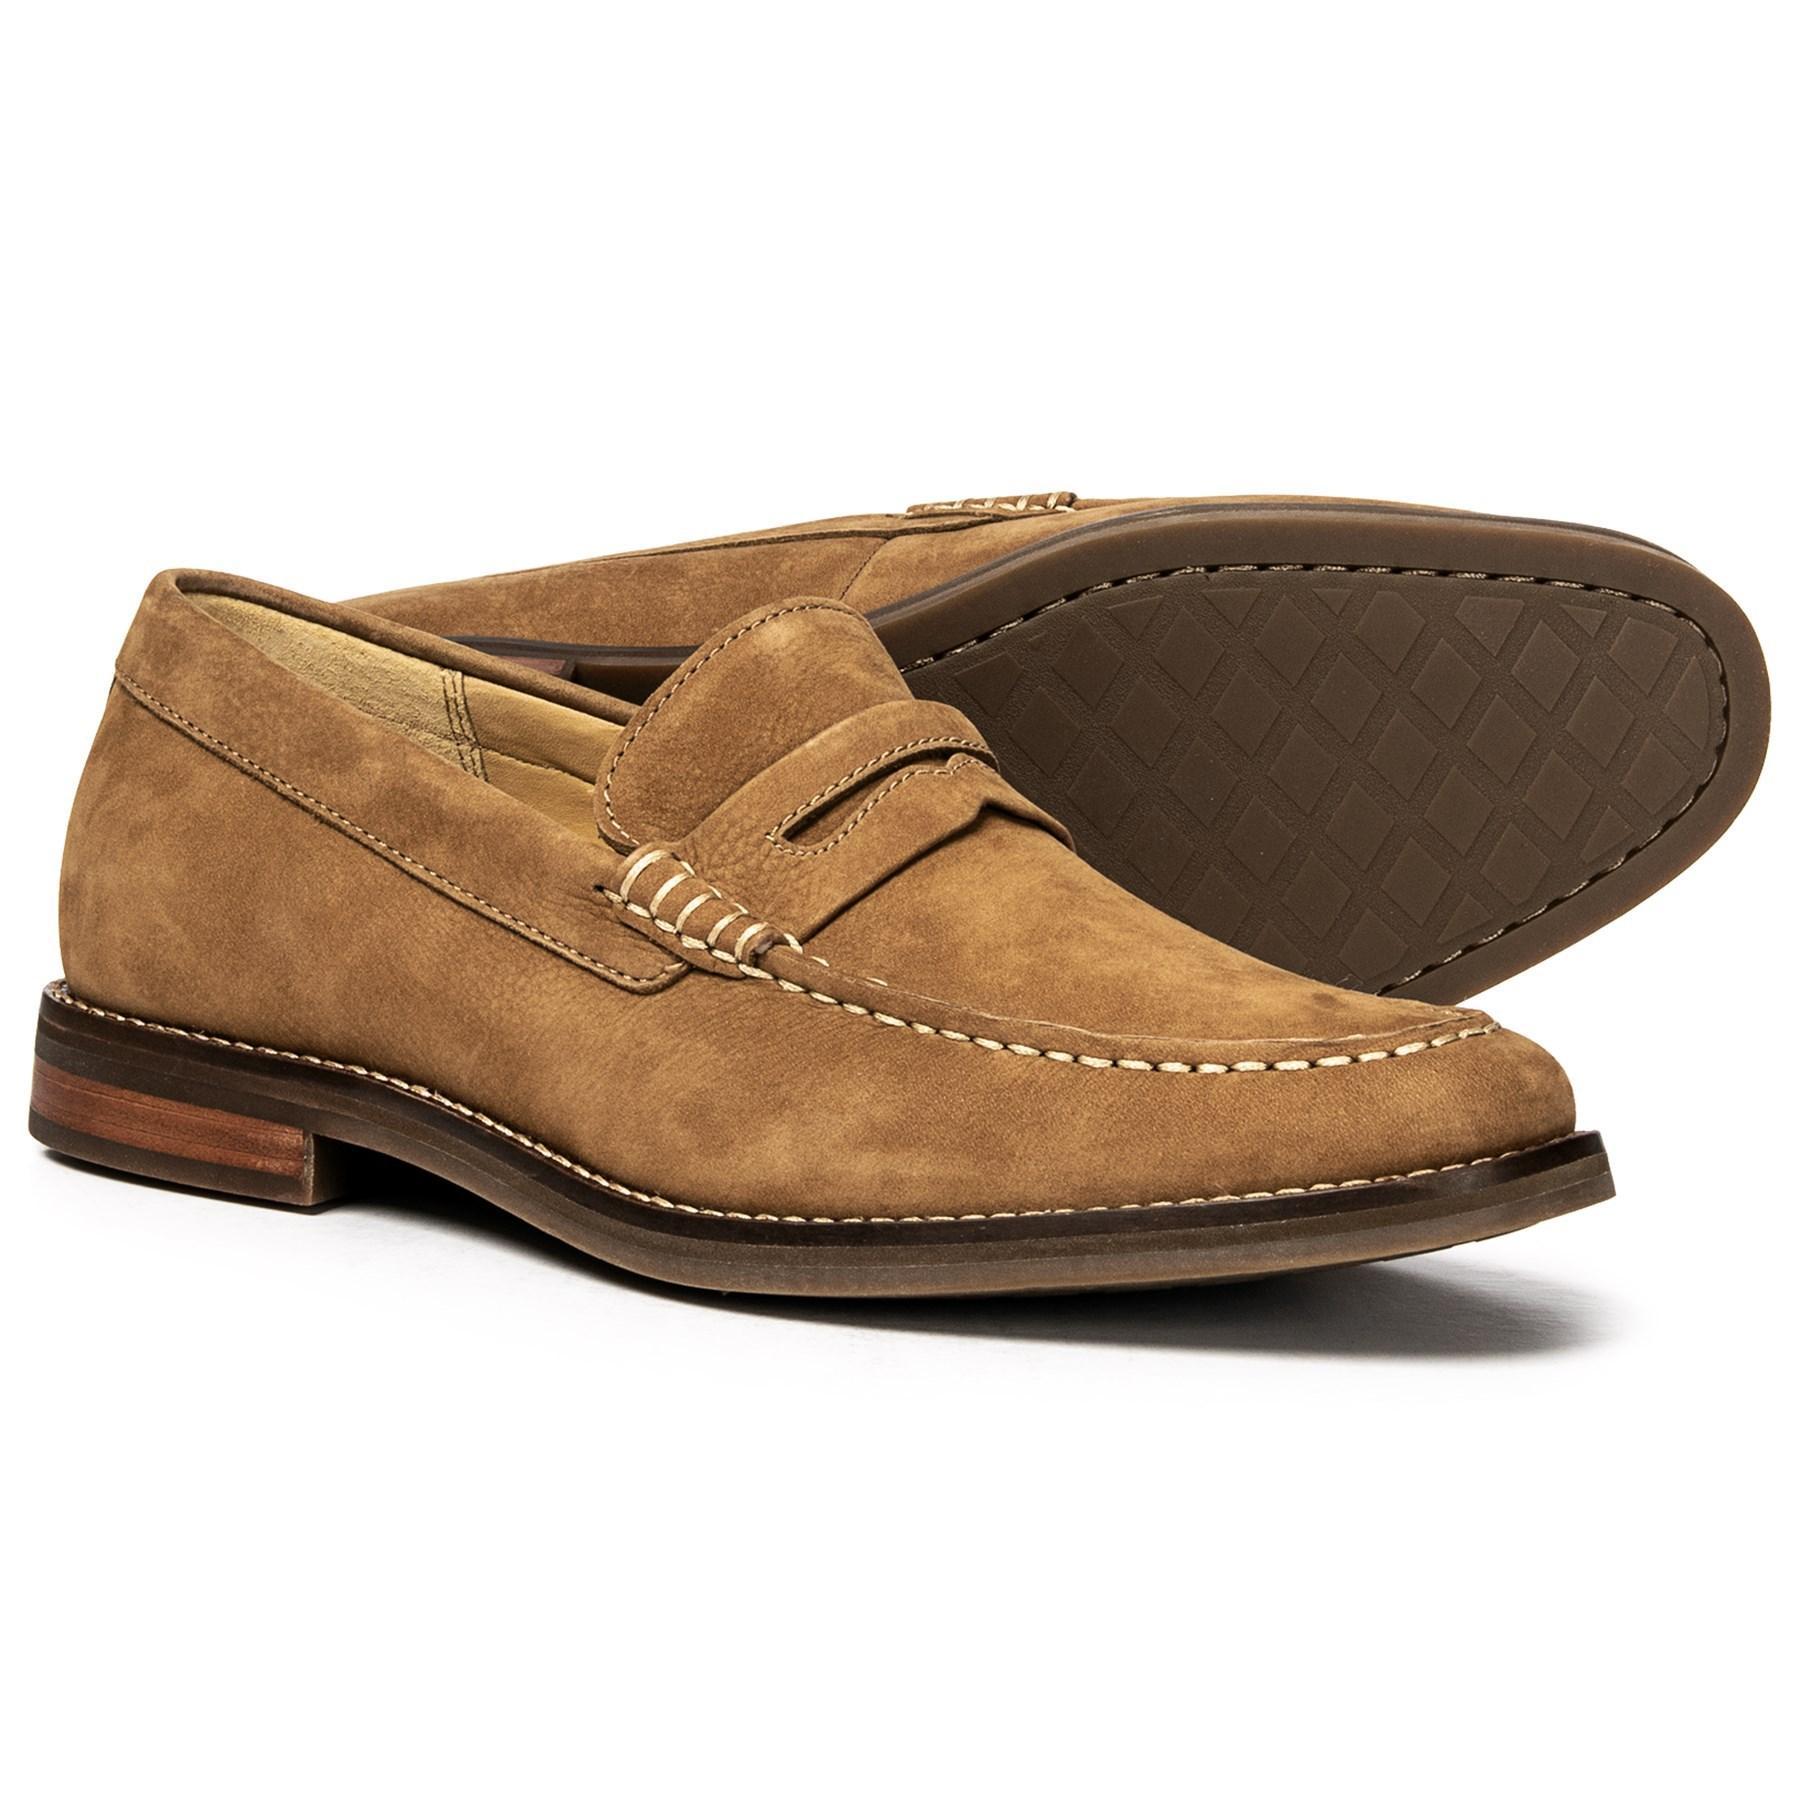 cfa6f0970d8 Lyst - Sperry Top-Sider Gold Cup Exeter Penny Loafers in Brown for Men